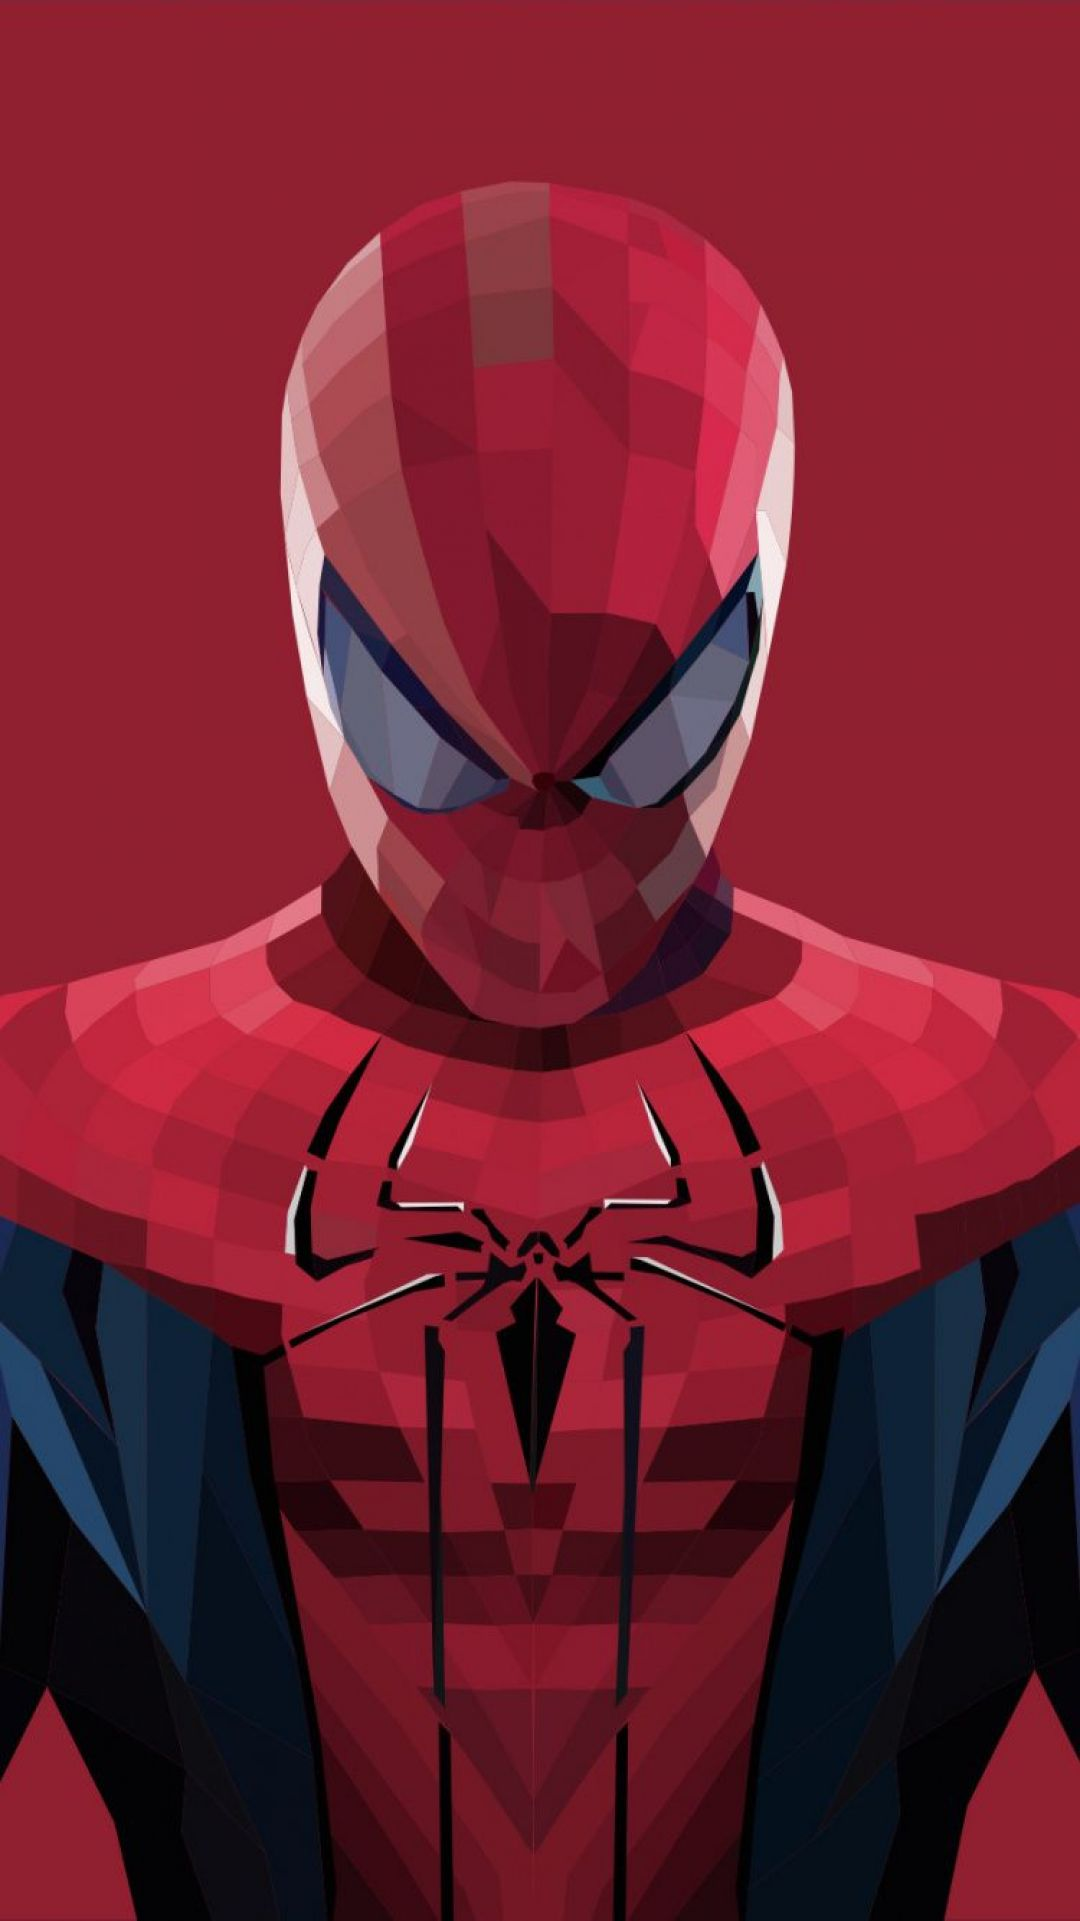 abstract spider manandroid iphone desktop hd backgrounds wallpapers 1080p 4k cgwsd